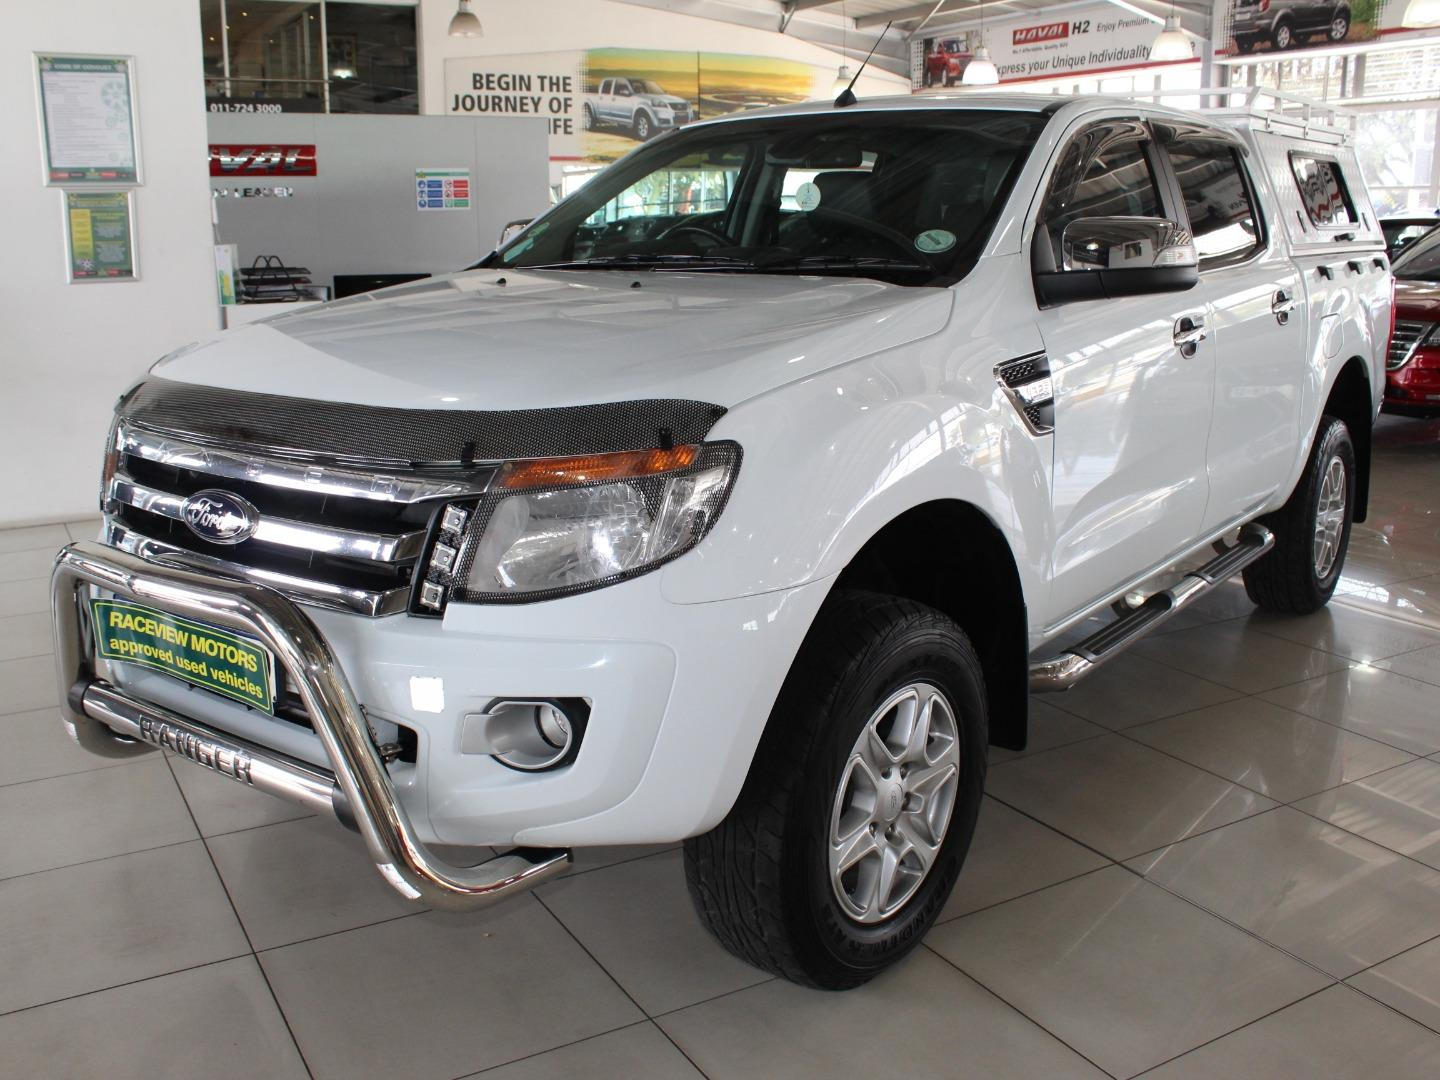 2014 Ford Ranger 3.2TDCi Double Cab Hi-Rider XLT Auto- Picture 7